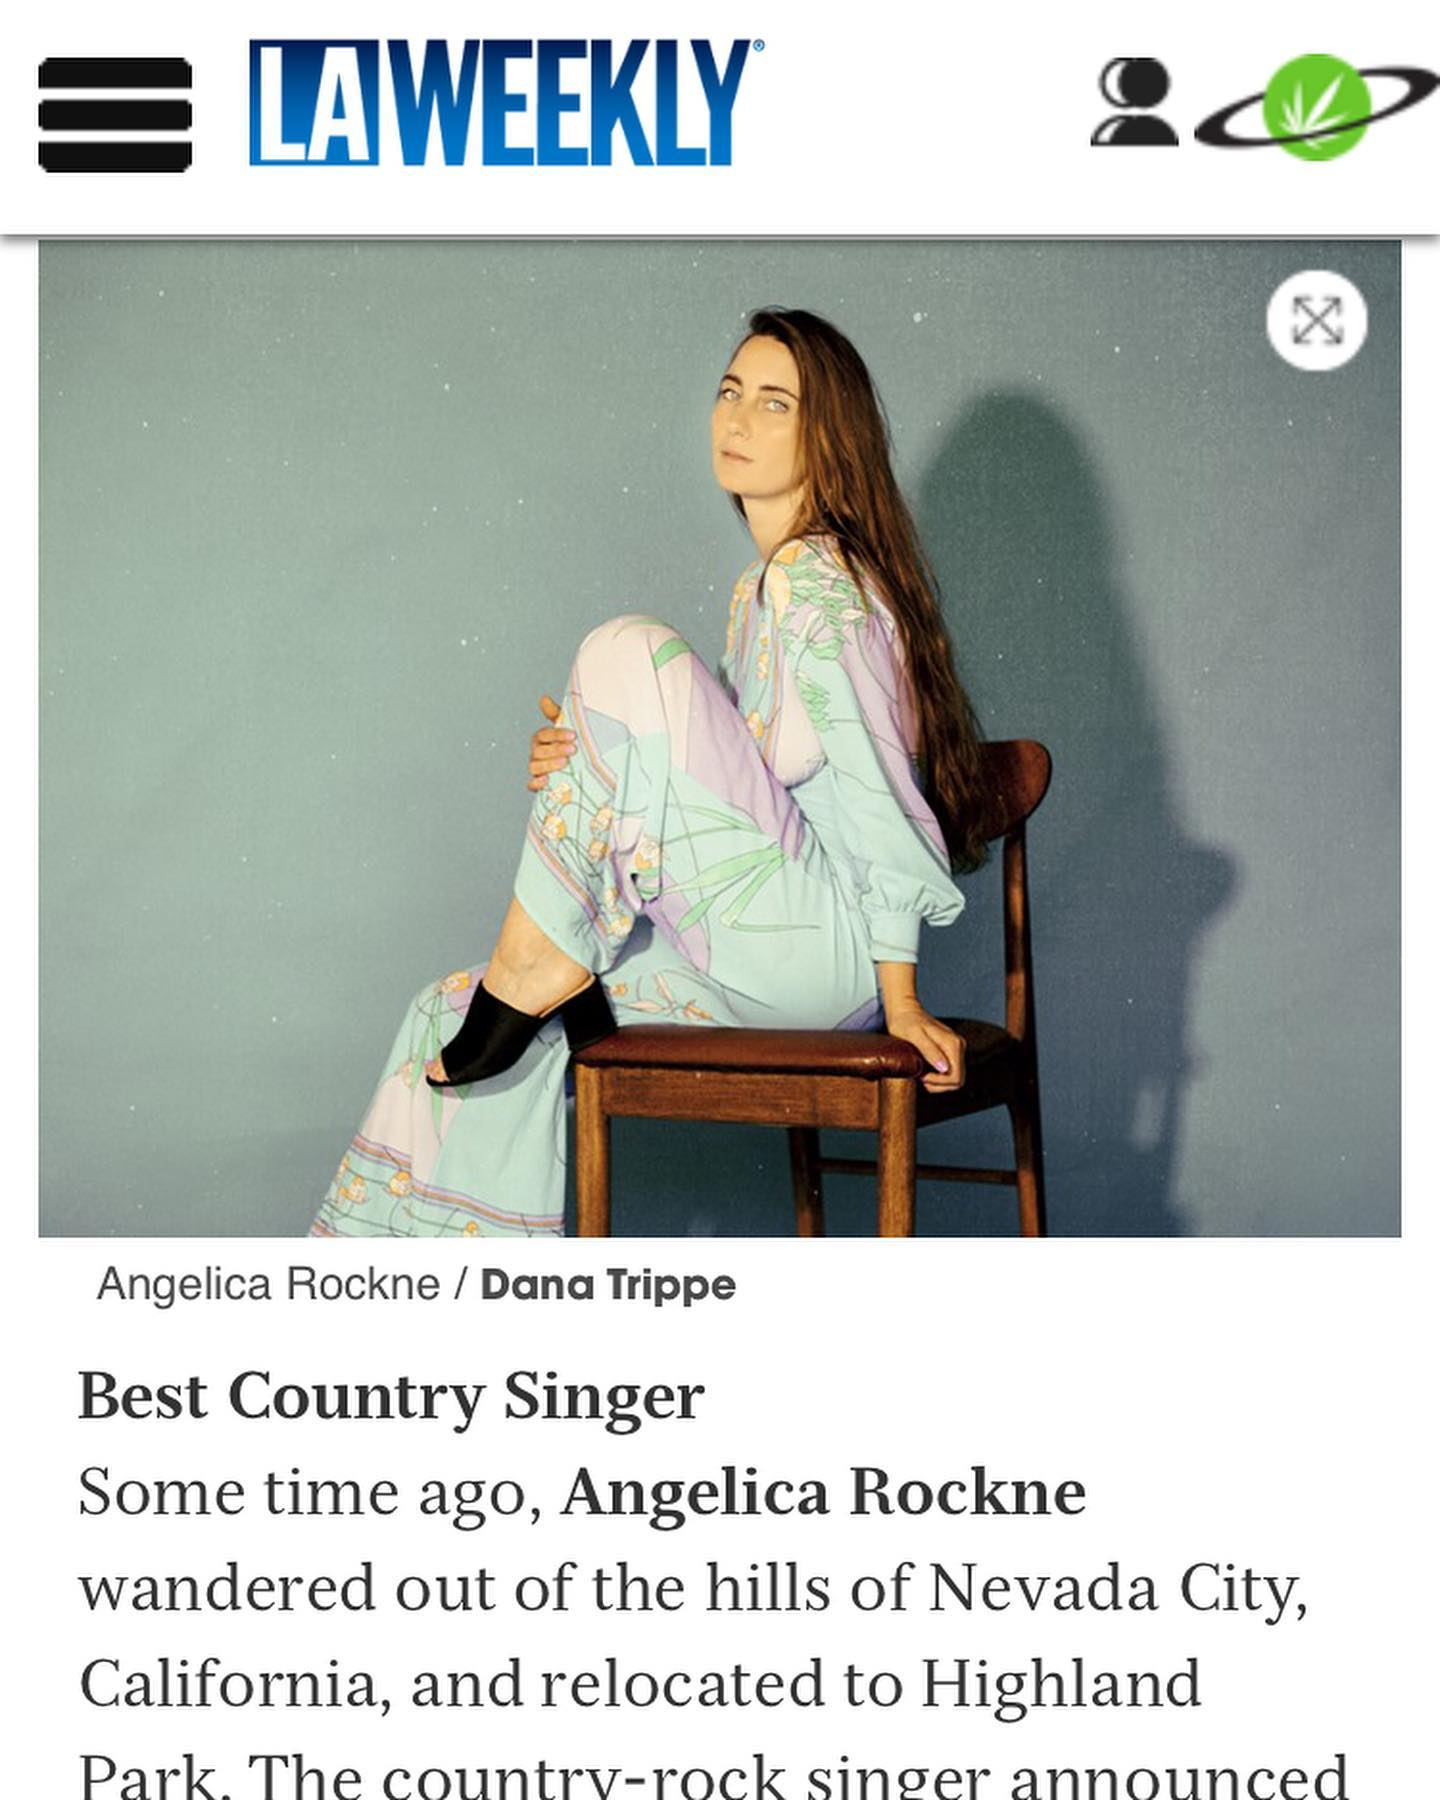 Best Country Singer - 2019 by Falling James of LA Weekly